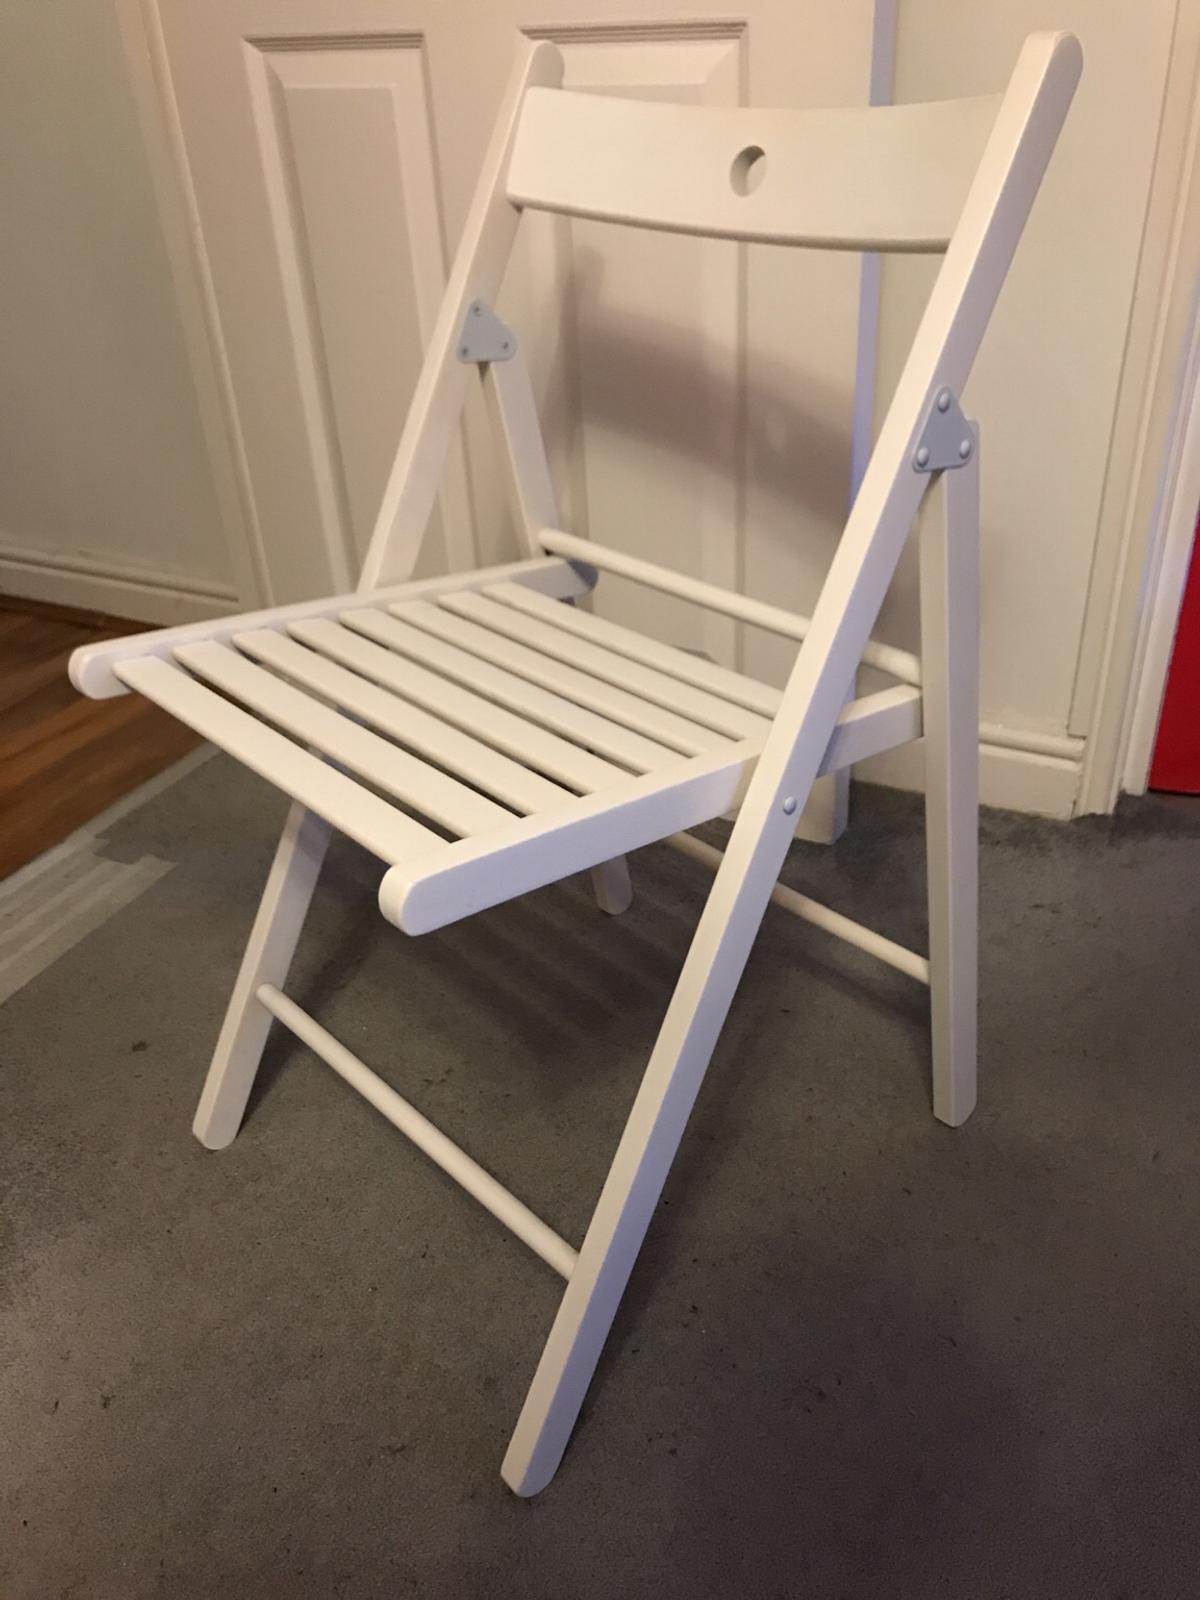 Phenomenal Ikea Terje White Folding Chair Lamtechconsult Wood Chair Design Ideas Lamtechconsultcom